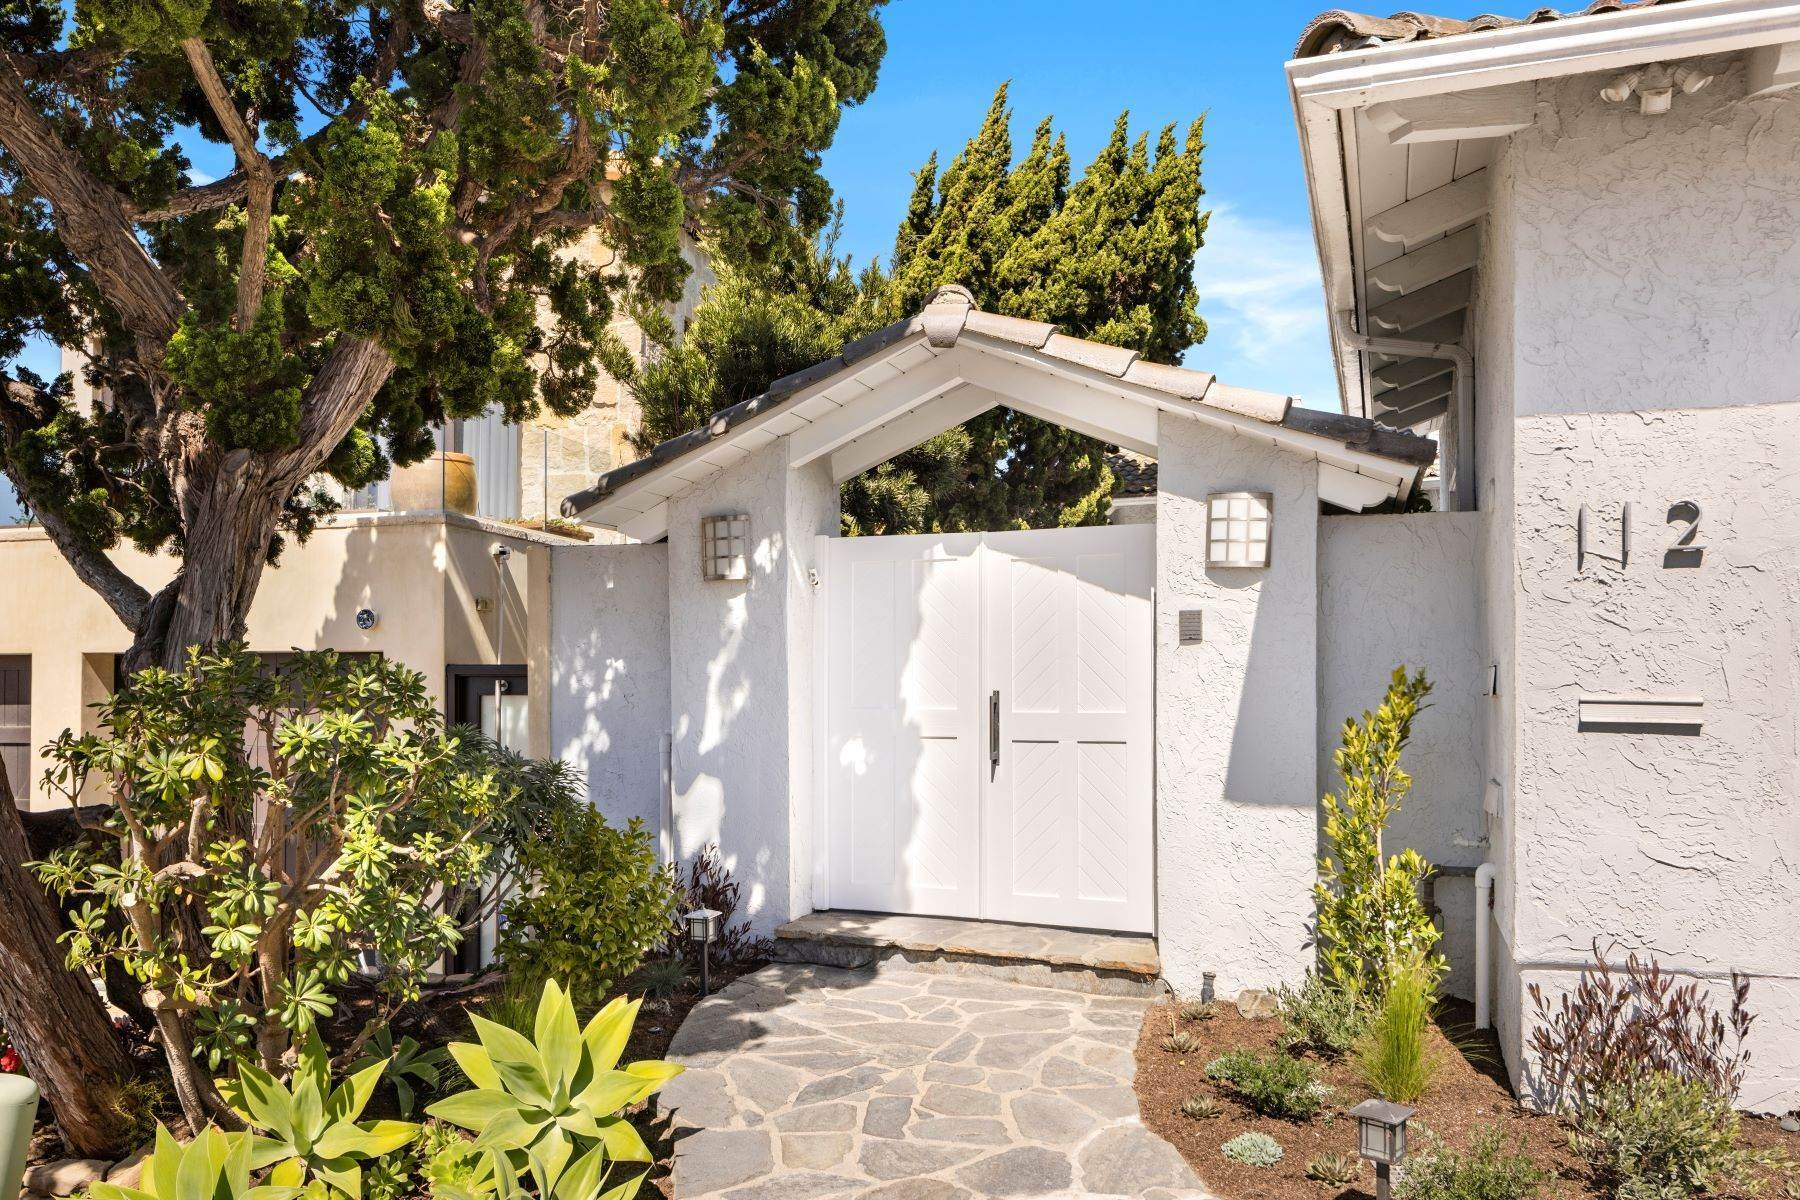 49. Single Family Homes for Sale at 112 South La Senda Drive, Laguna Beach, CA 92651 112 South La Senda Drive Laguna Beach, California 92651 United States